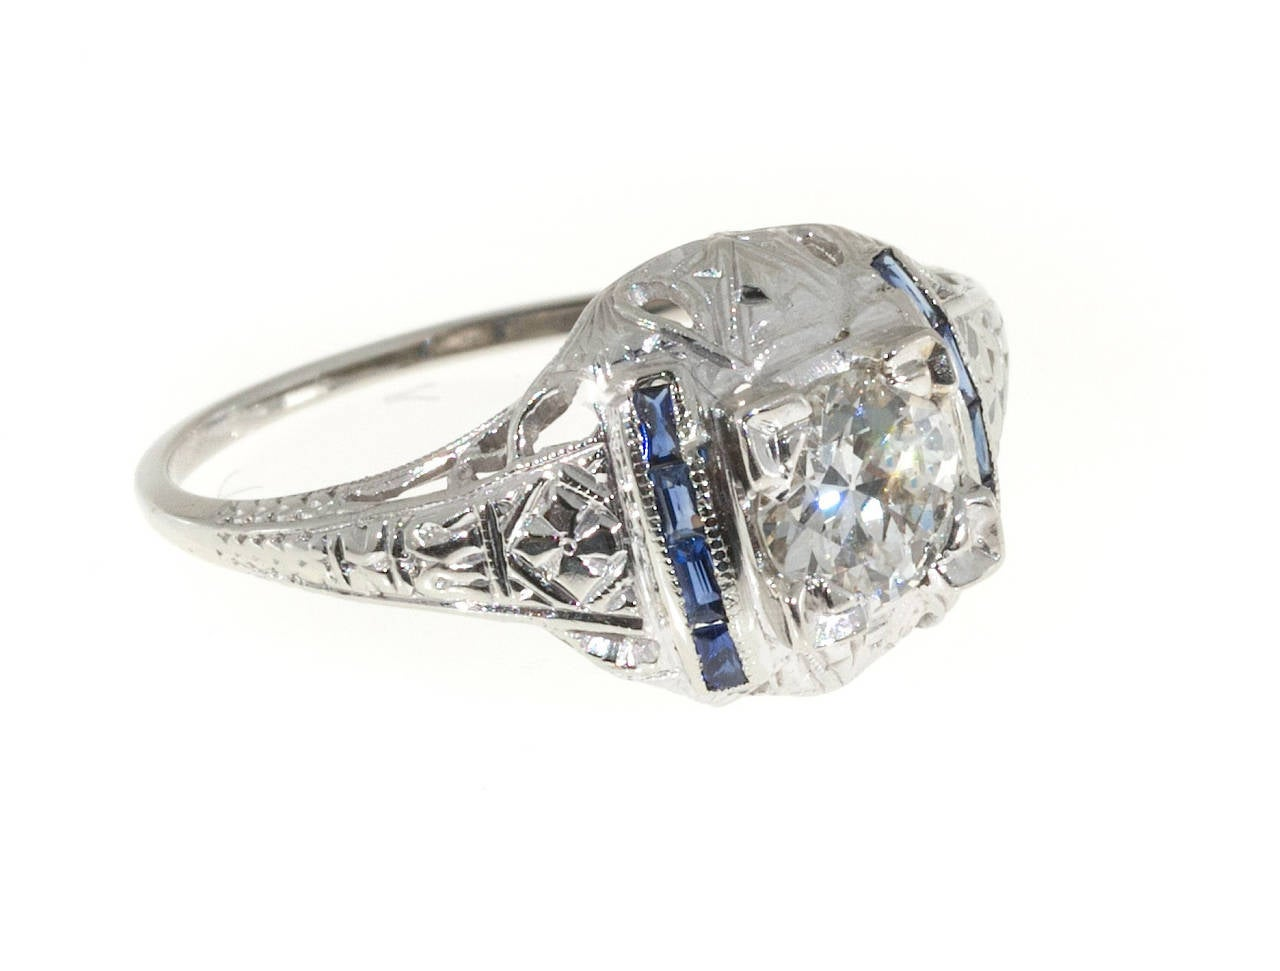 deco and sapphire domed engraved filigree